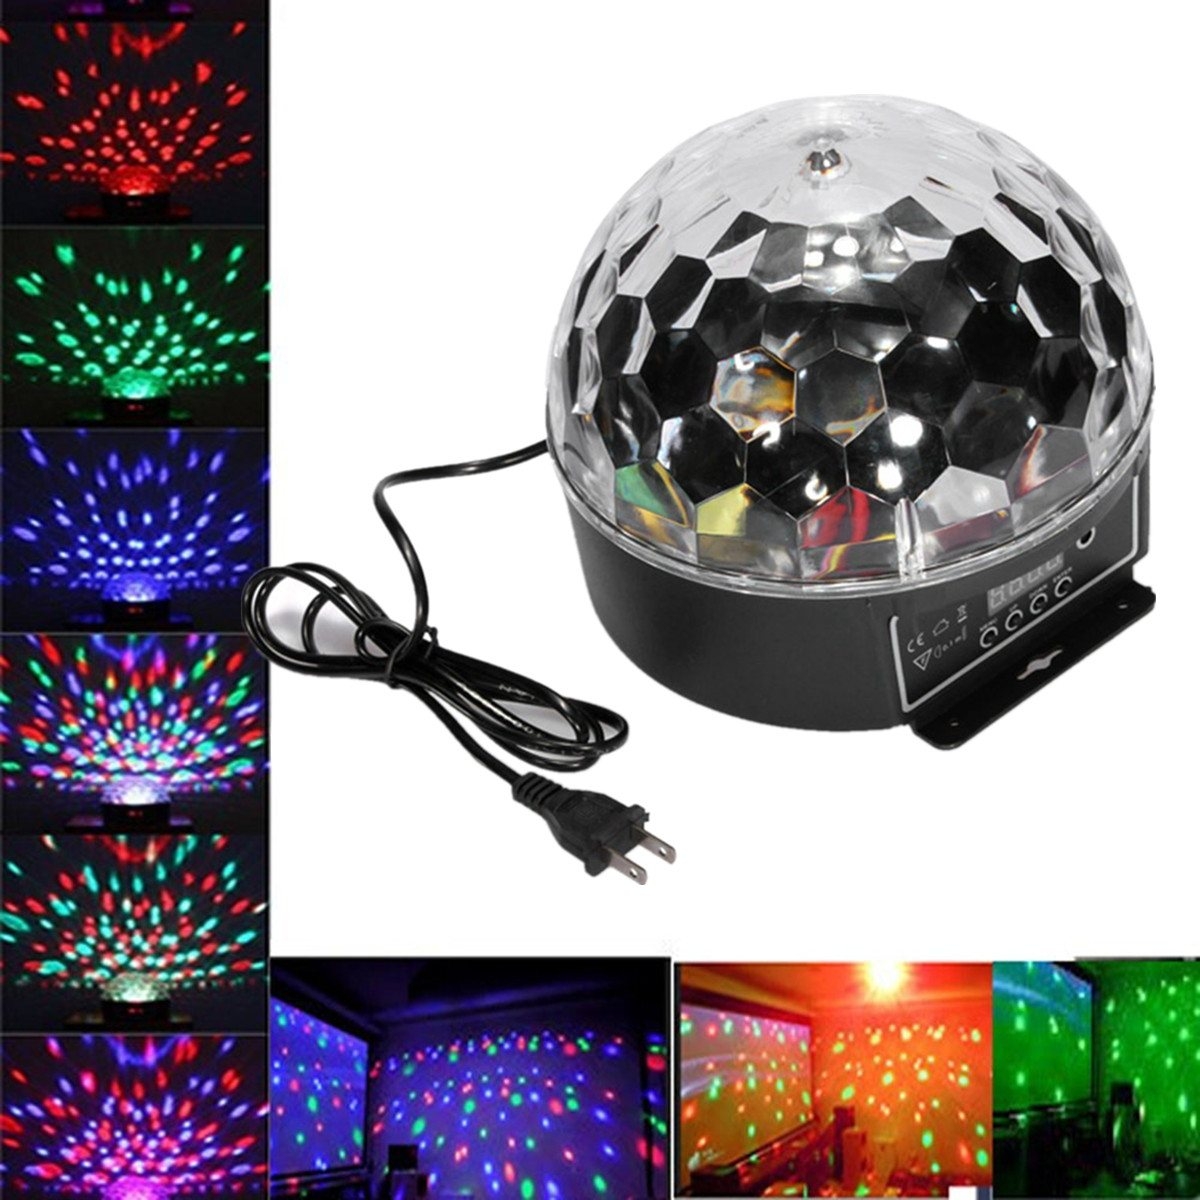 smuxi dj disco ball 20w sound activated laser projector rgb stage lighting effect lamp christmas ktv music party light